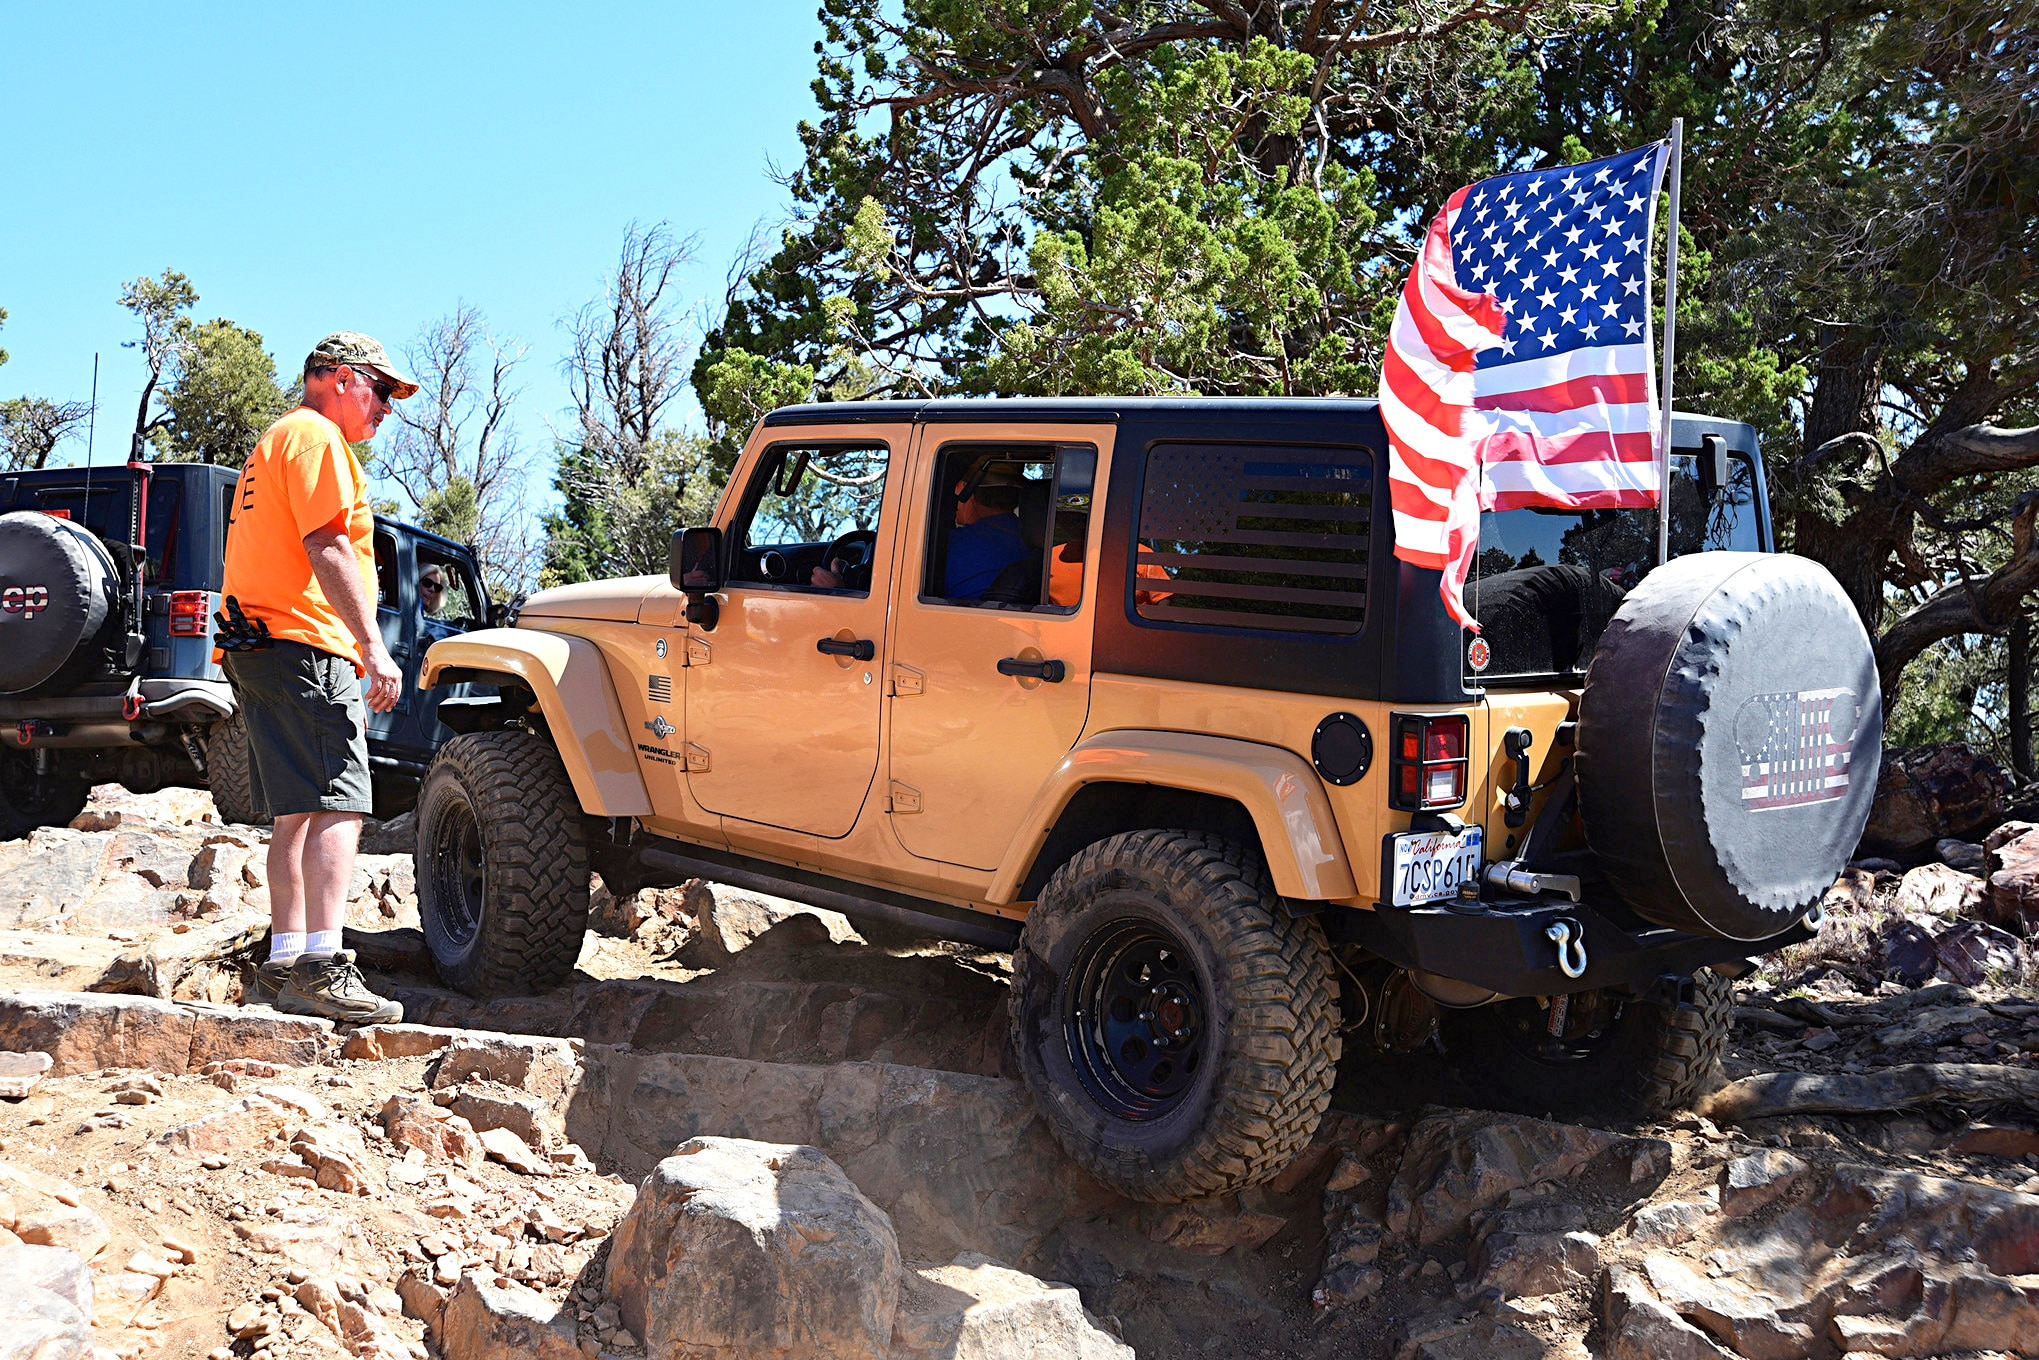 032 jeep event big bear forest fest 2019 inland empire